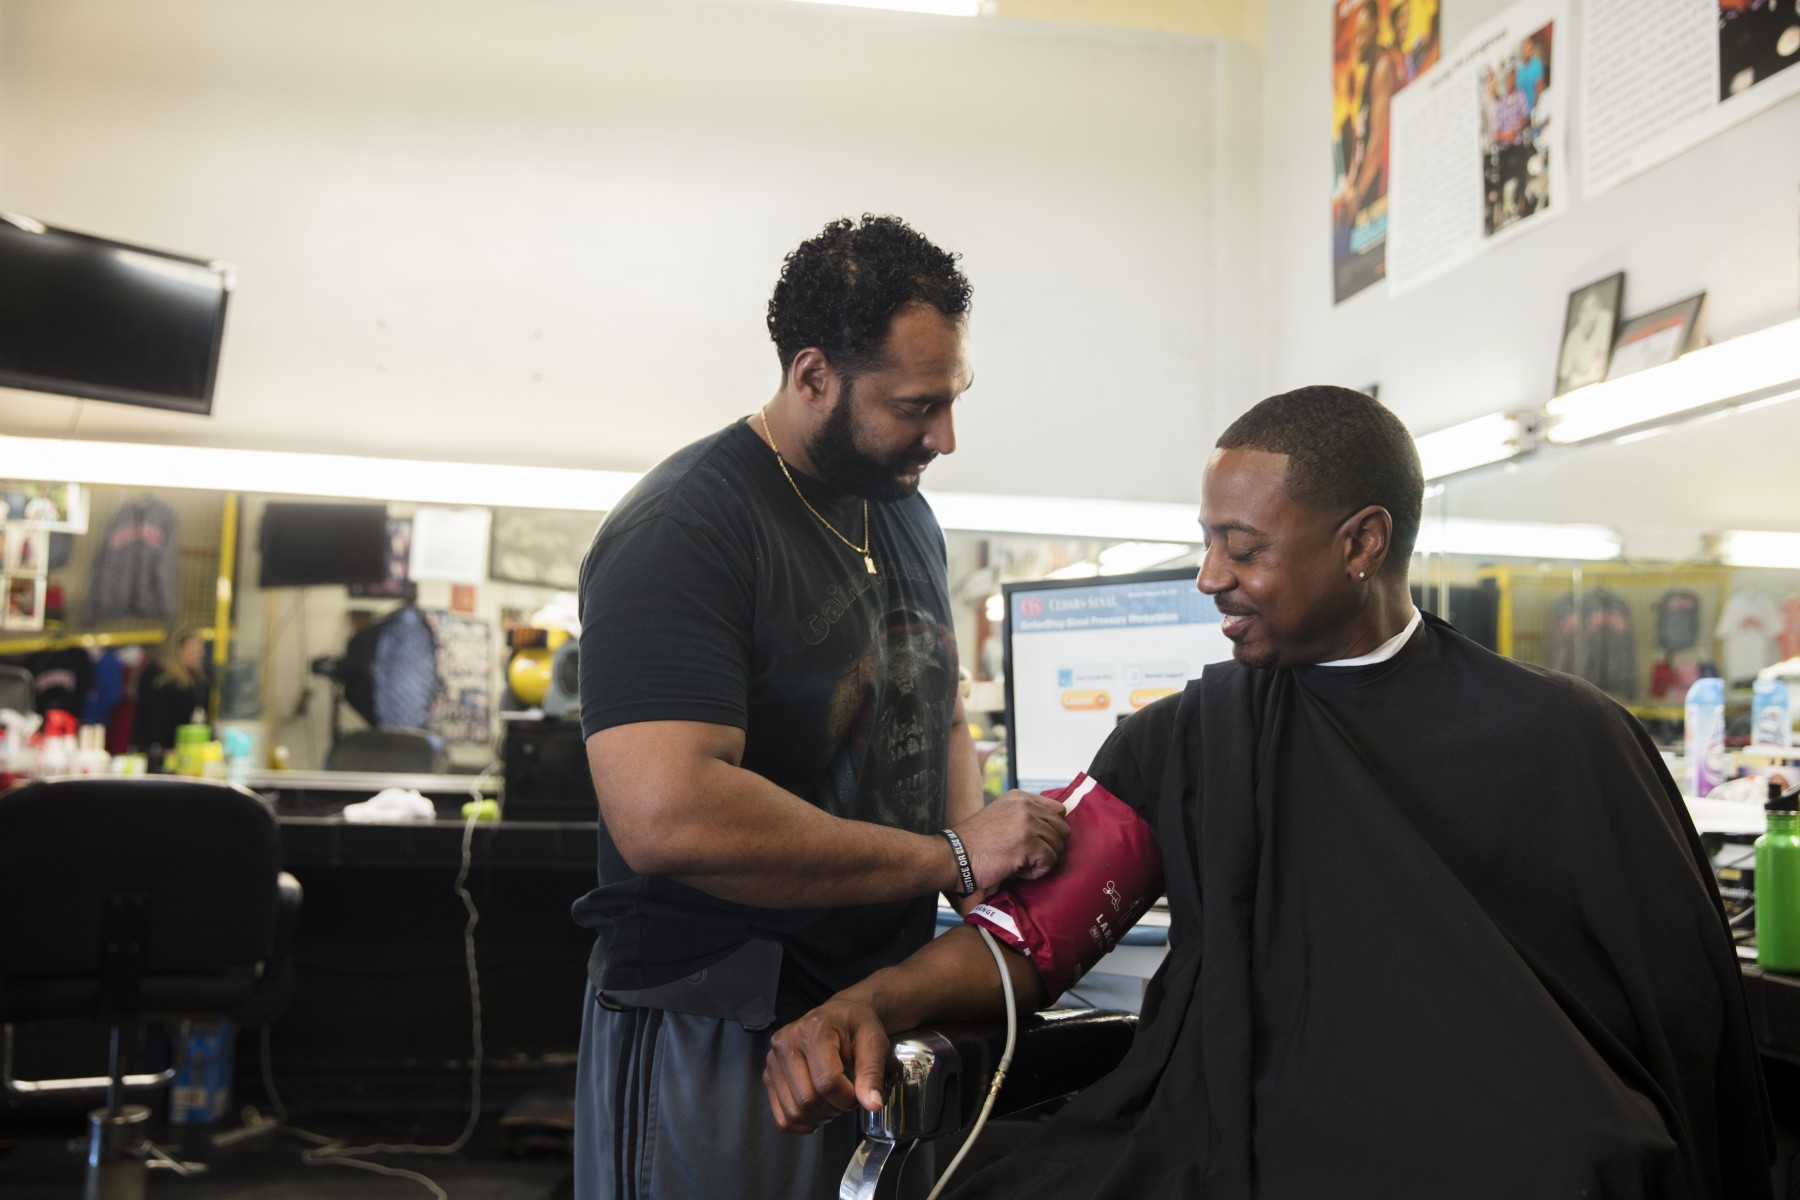 Barber Eric Muhammad takes patron Marc Sims' blood pressure. Photo by Cedars-Sinai.